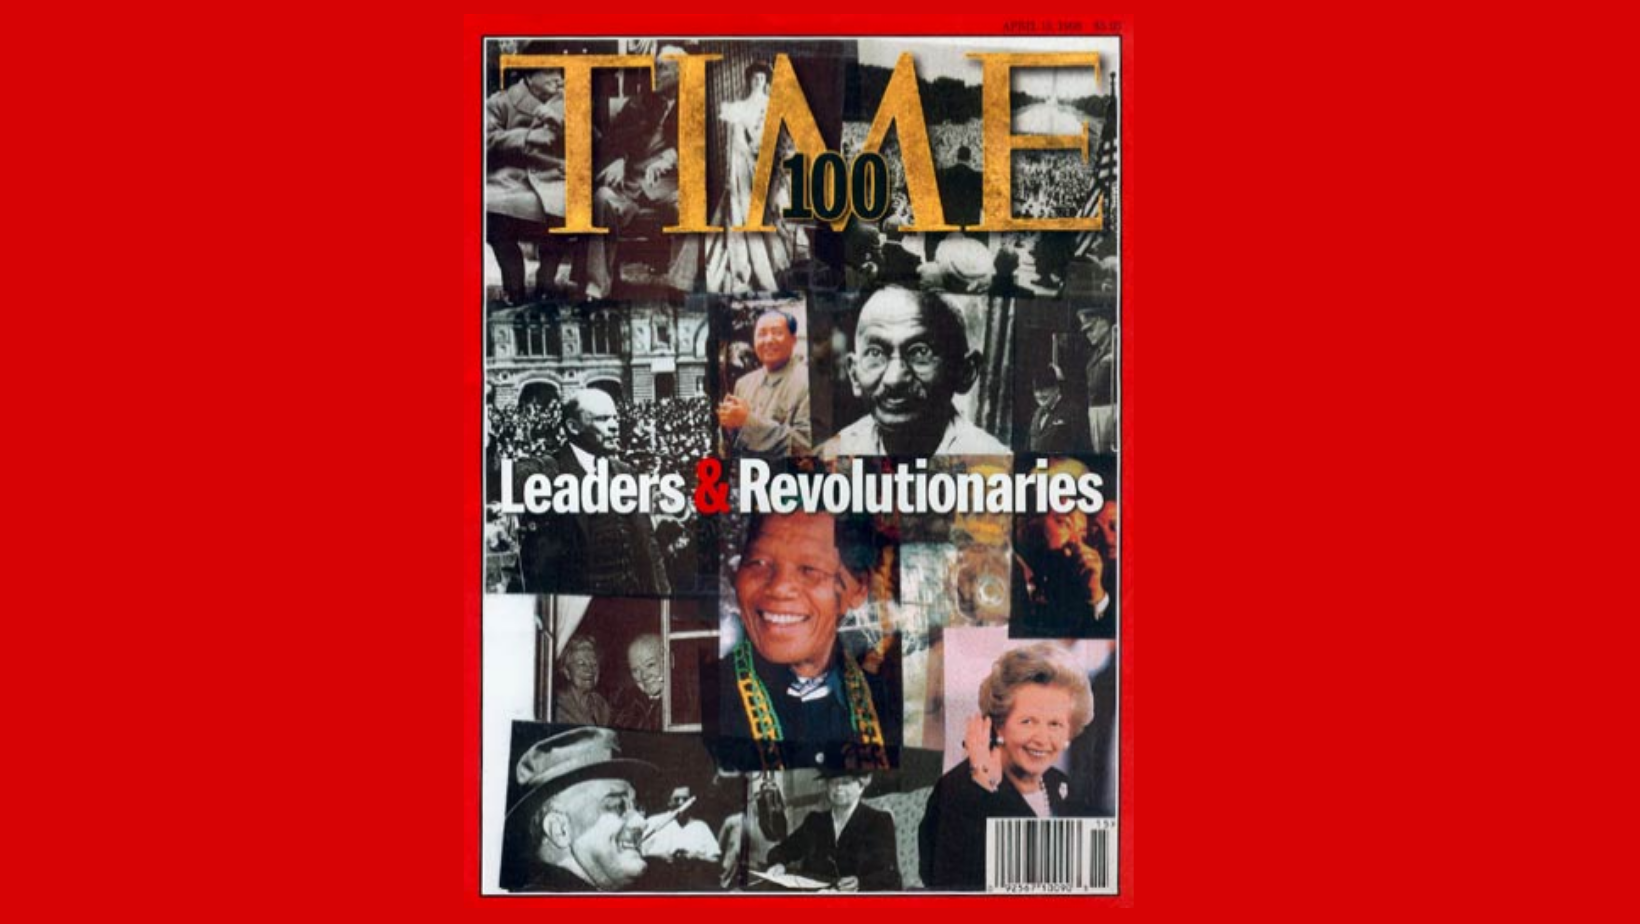 Most influential leaders and revolutionaries of the 20th century. Time 100